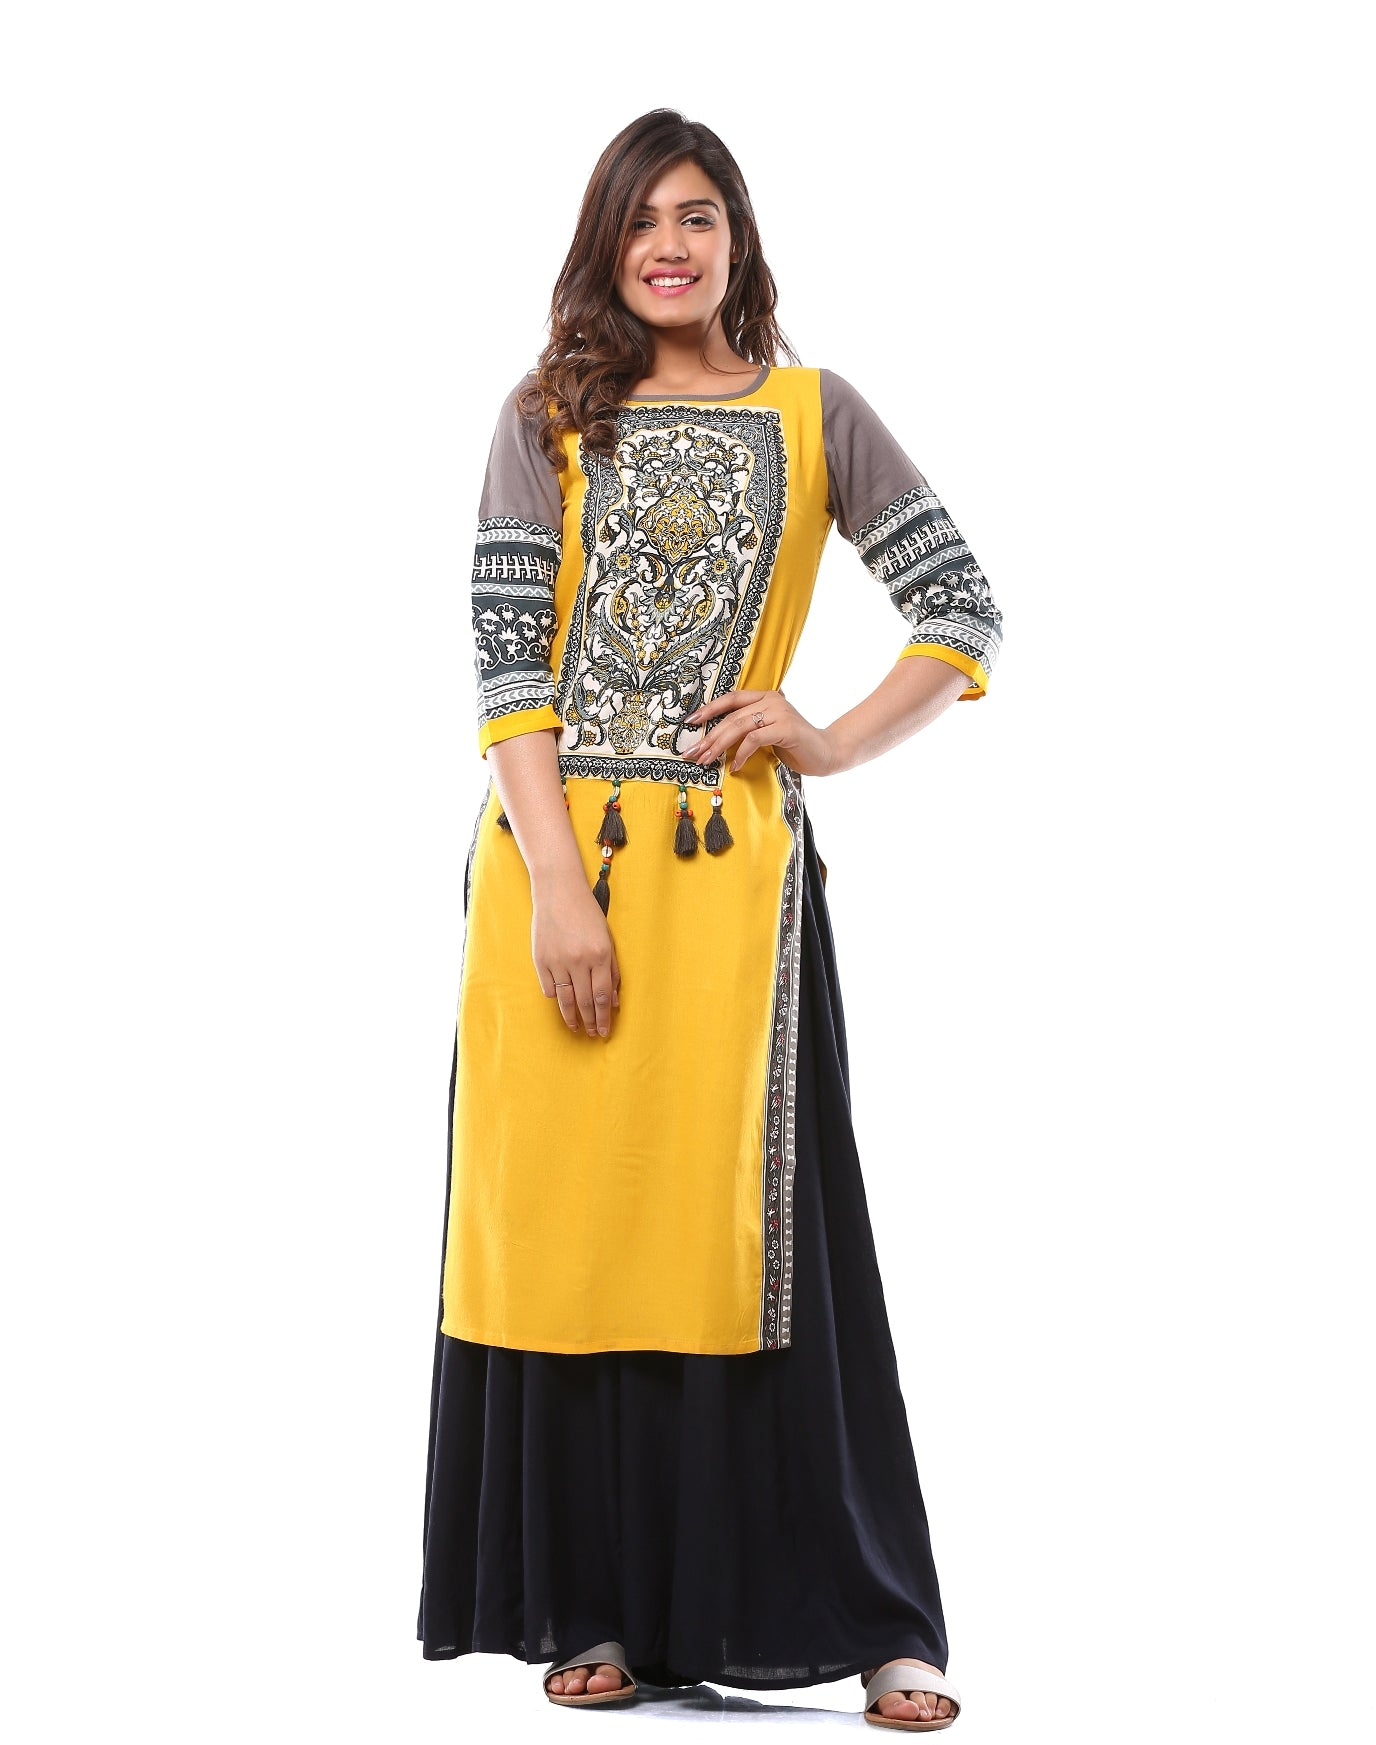 Mughal Kurta with Tassels and Beads